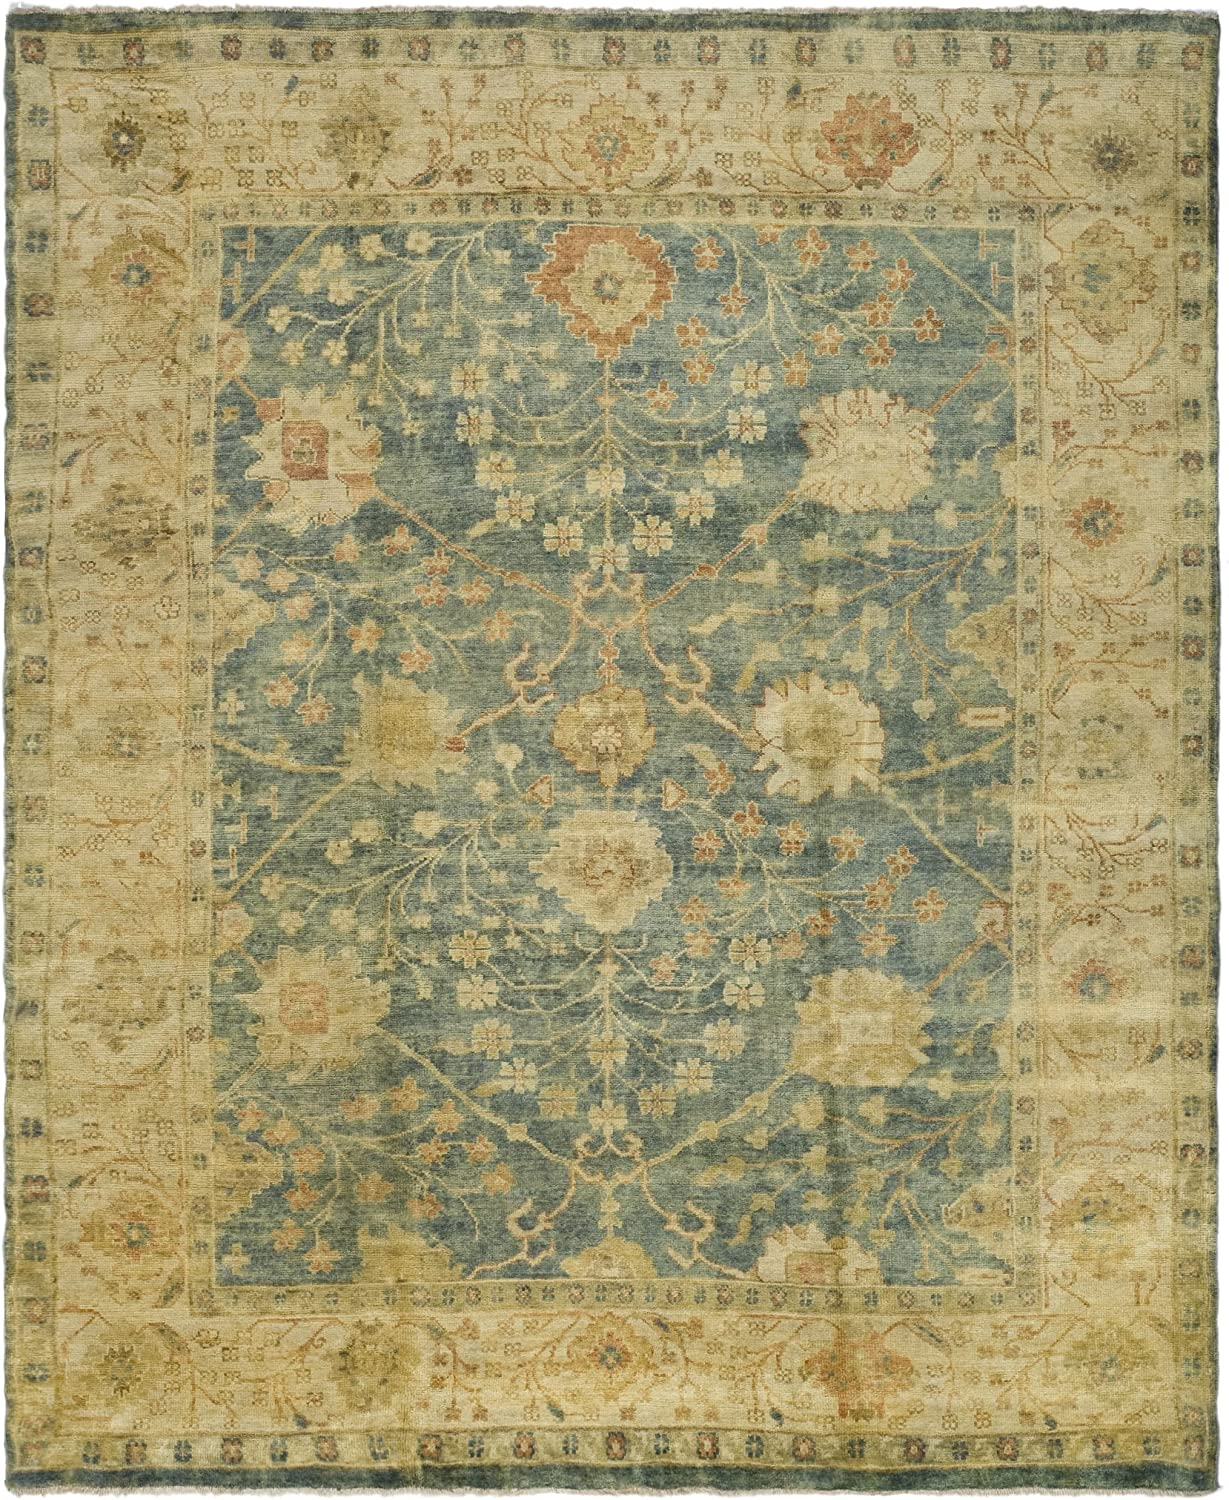 Safavieh Oushak Collection Osh117a Hand Knotted Traditional Oriental Premium Wool Area Rug 10 X 14 Medium Blue Green Furniture Decor